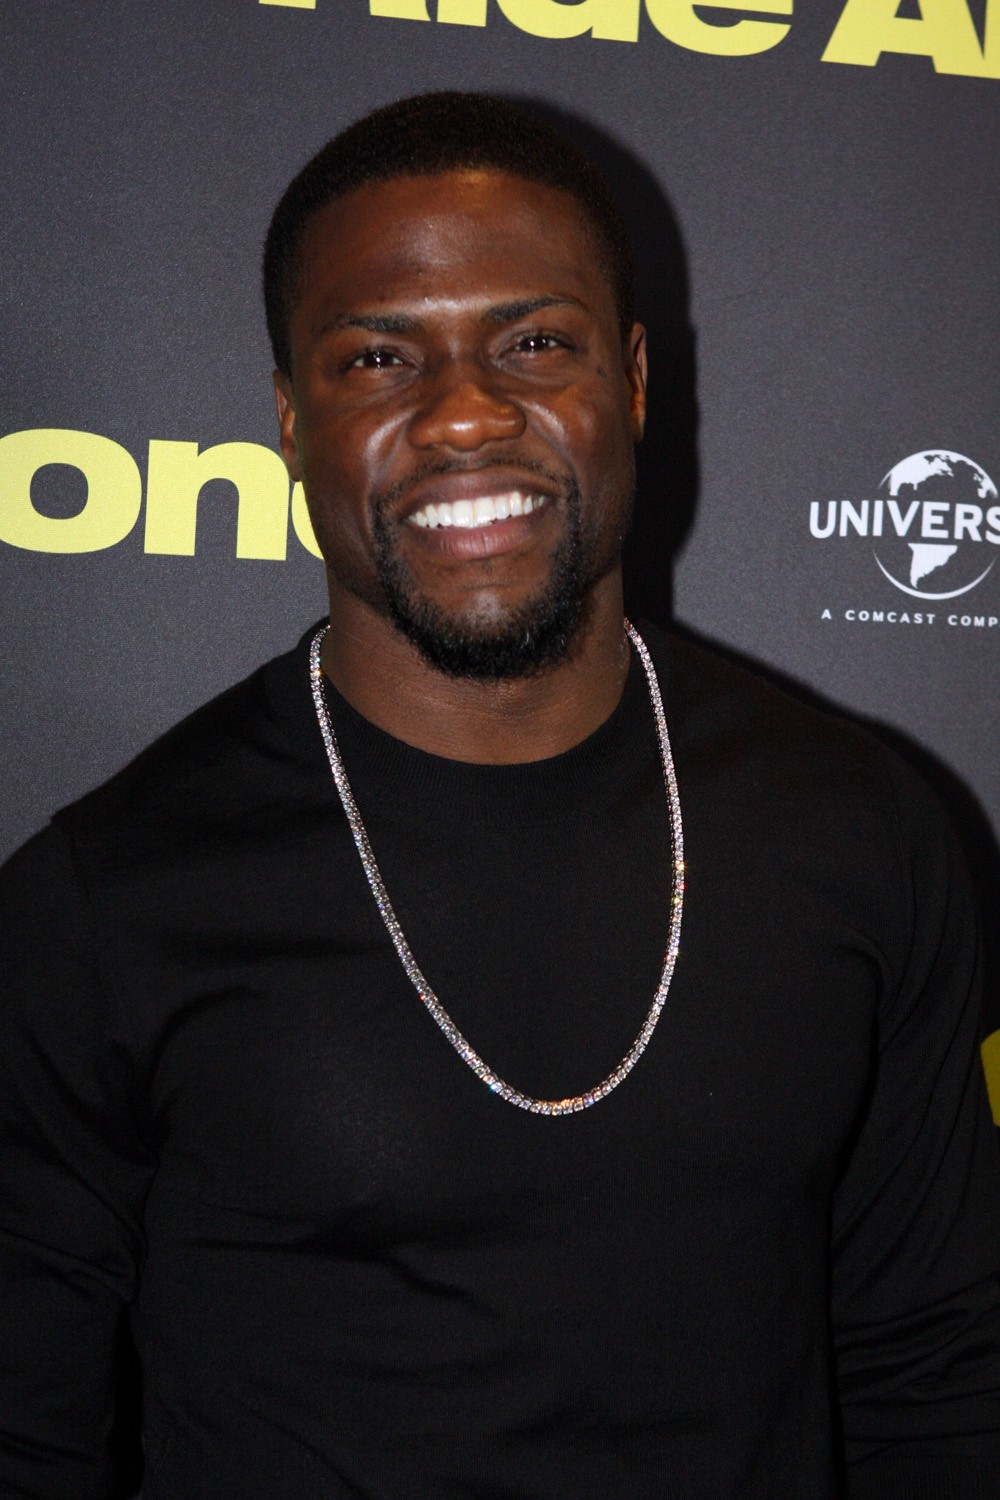 Comedian and actor Kevin Hart wearing a black shirt and a chain